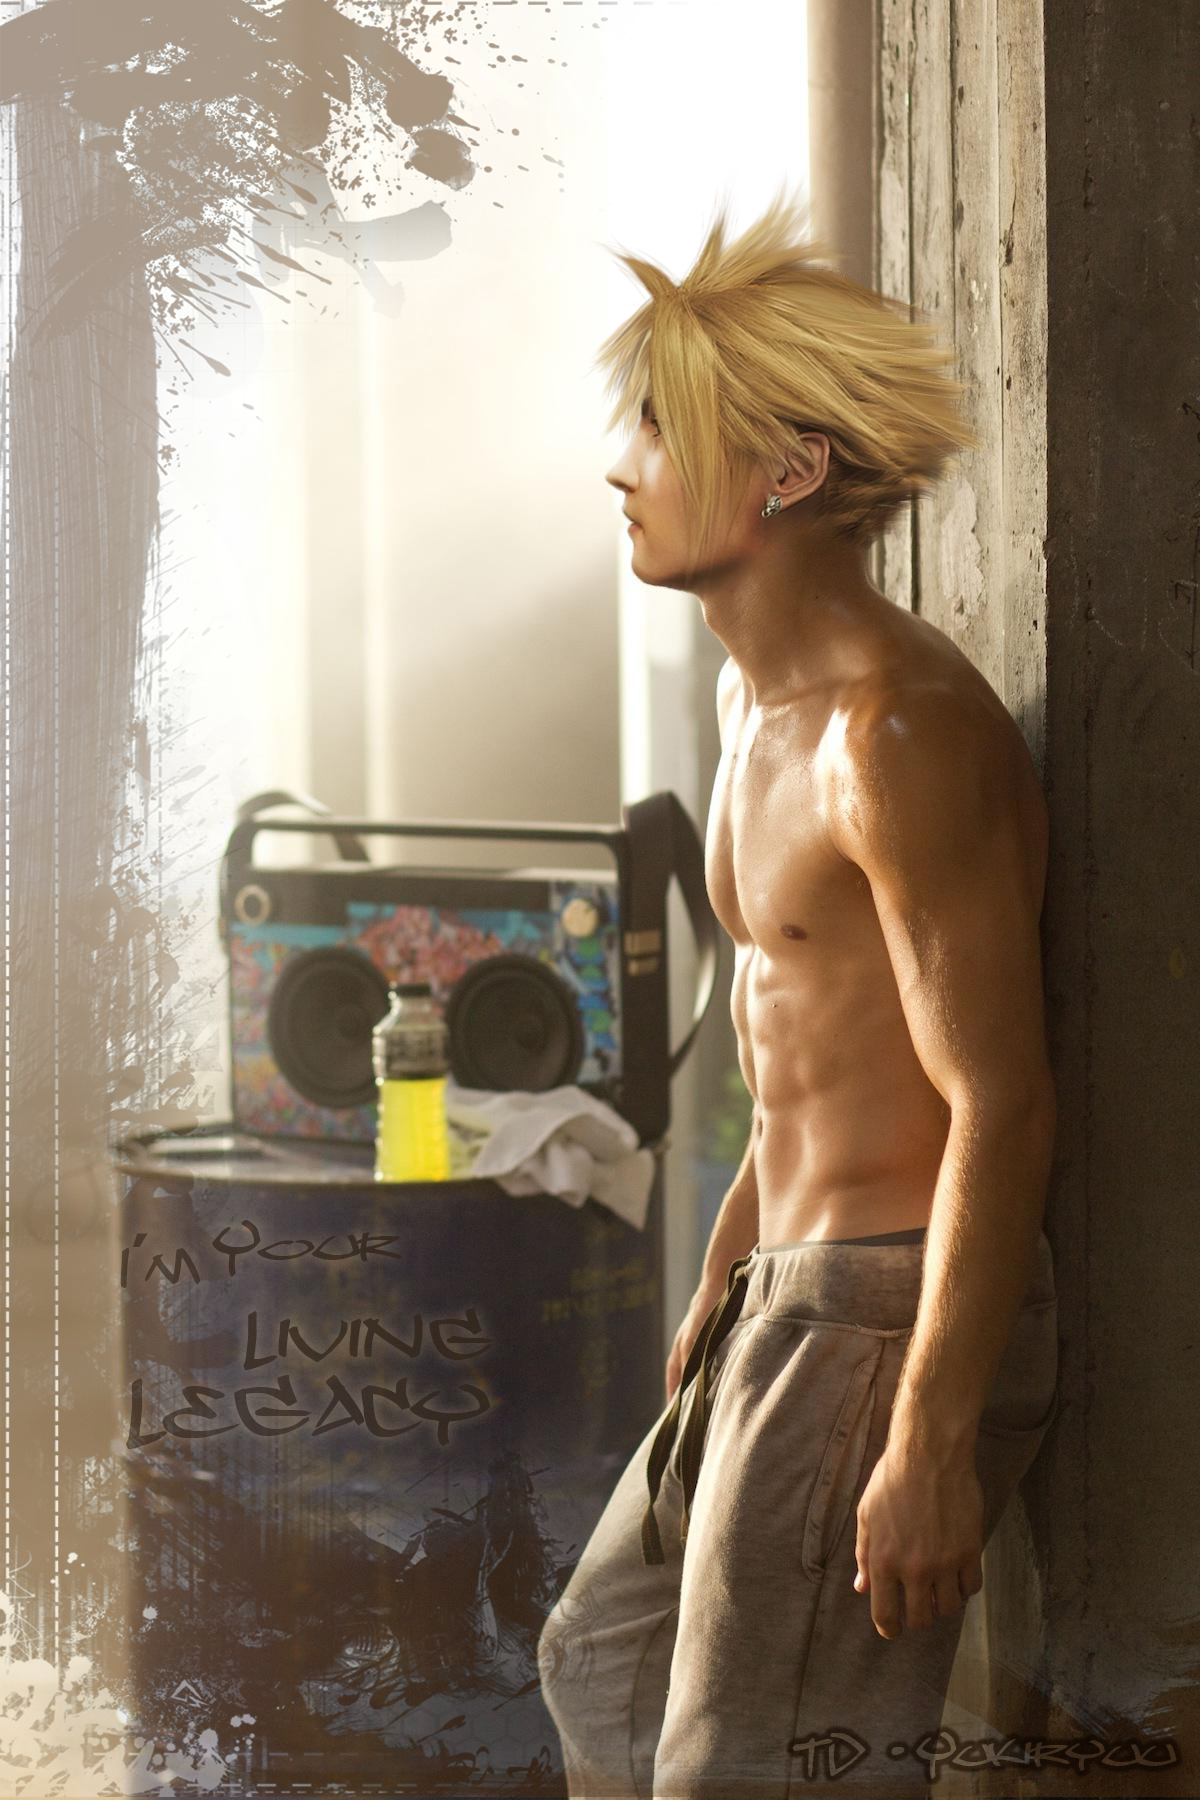 Cloud Strife: I'm Your Living Legacy by TD-Yukiryuu